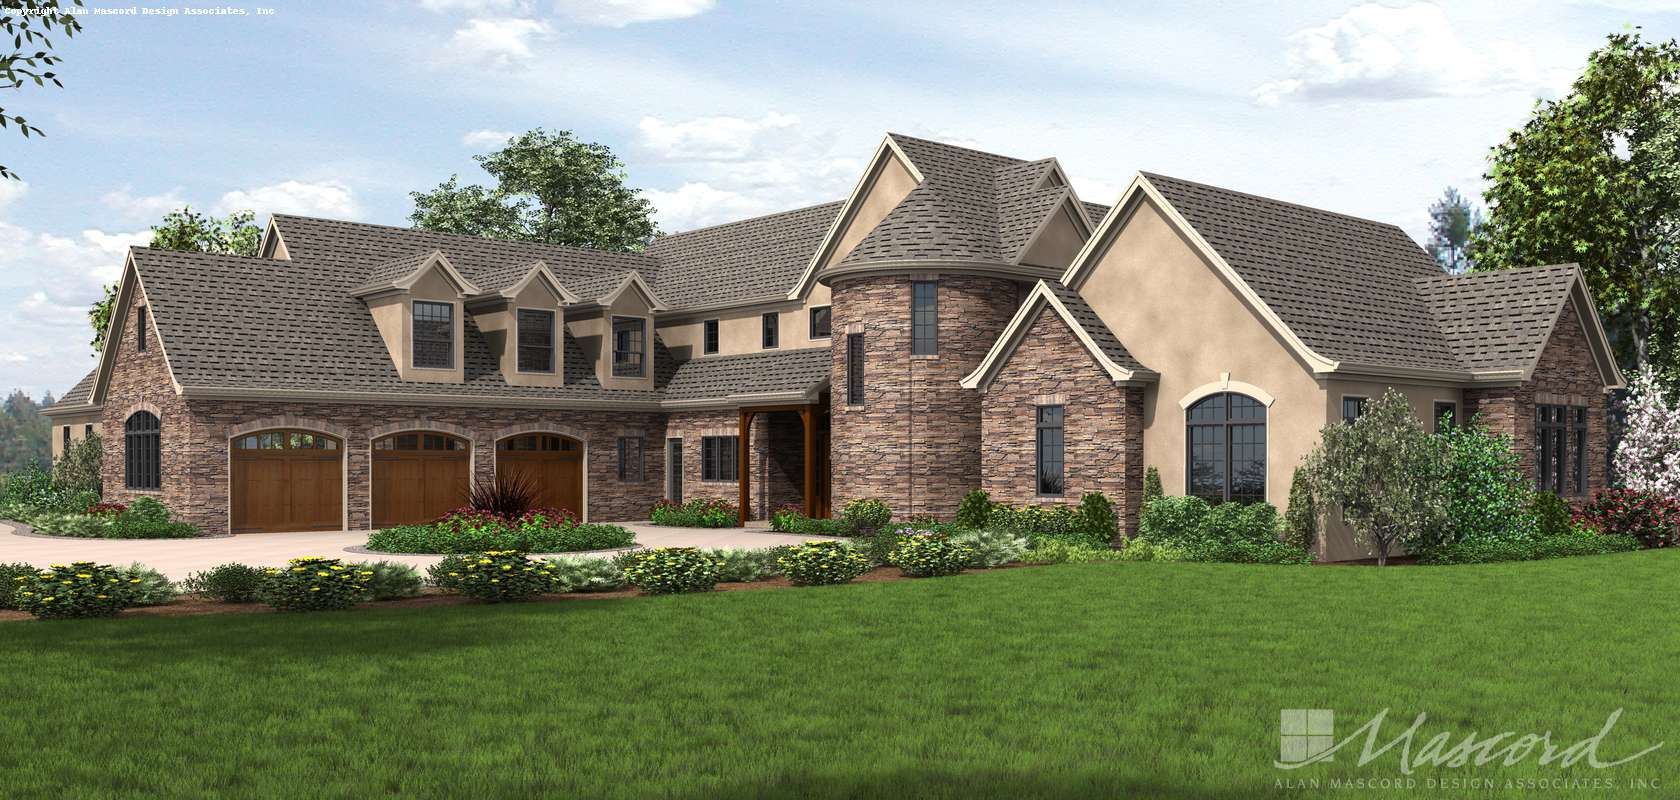 Mascord House Plan 2479: The Belle Reve